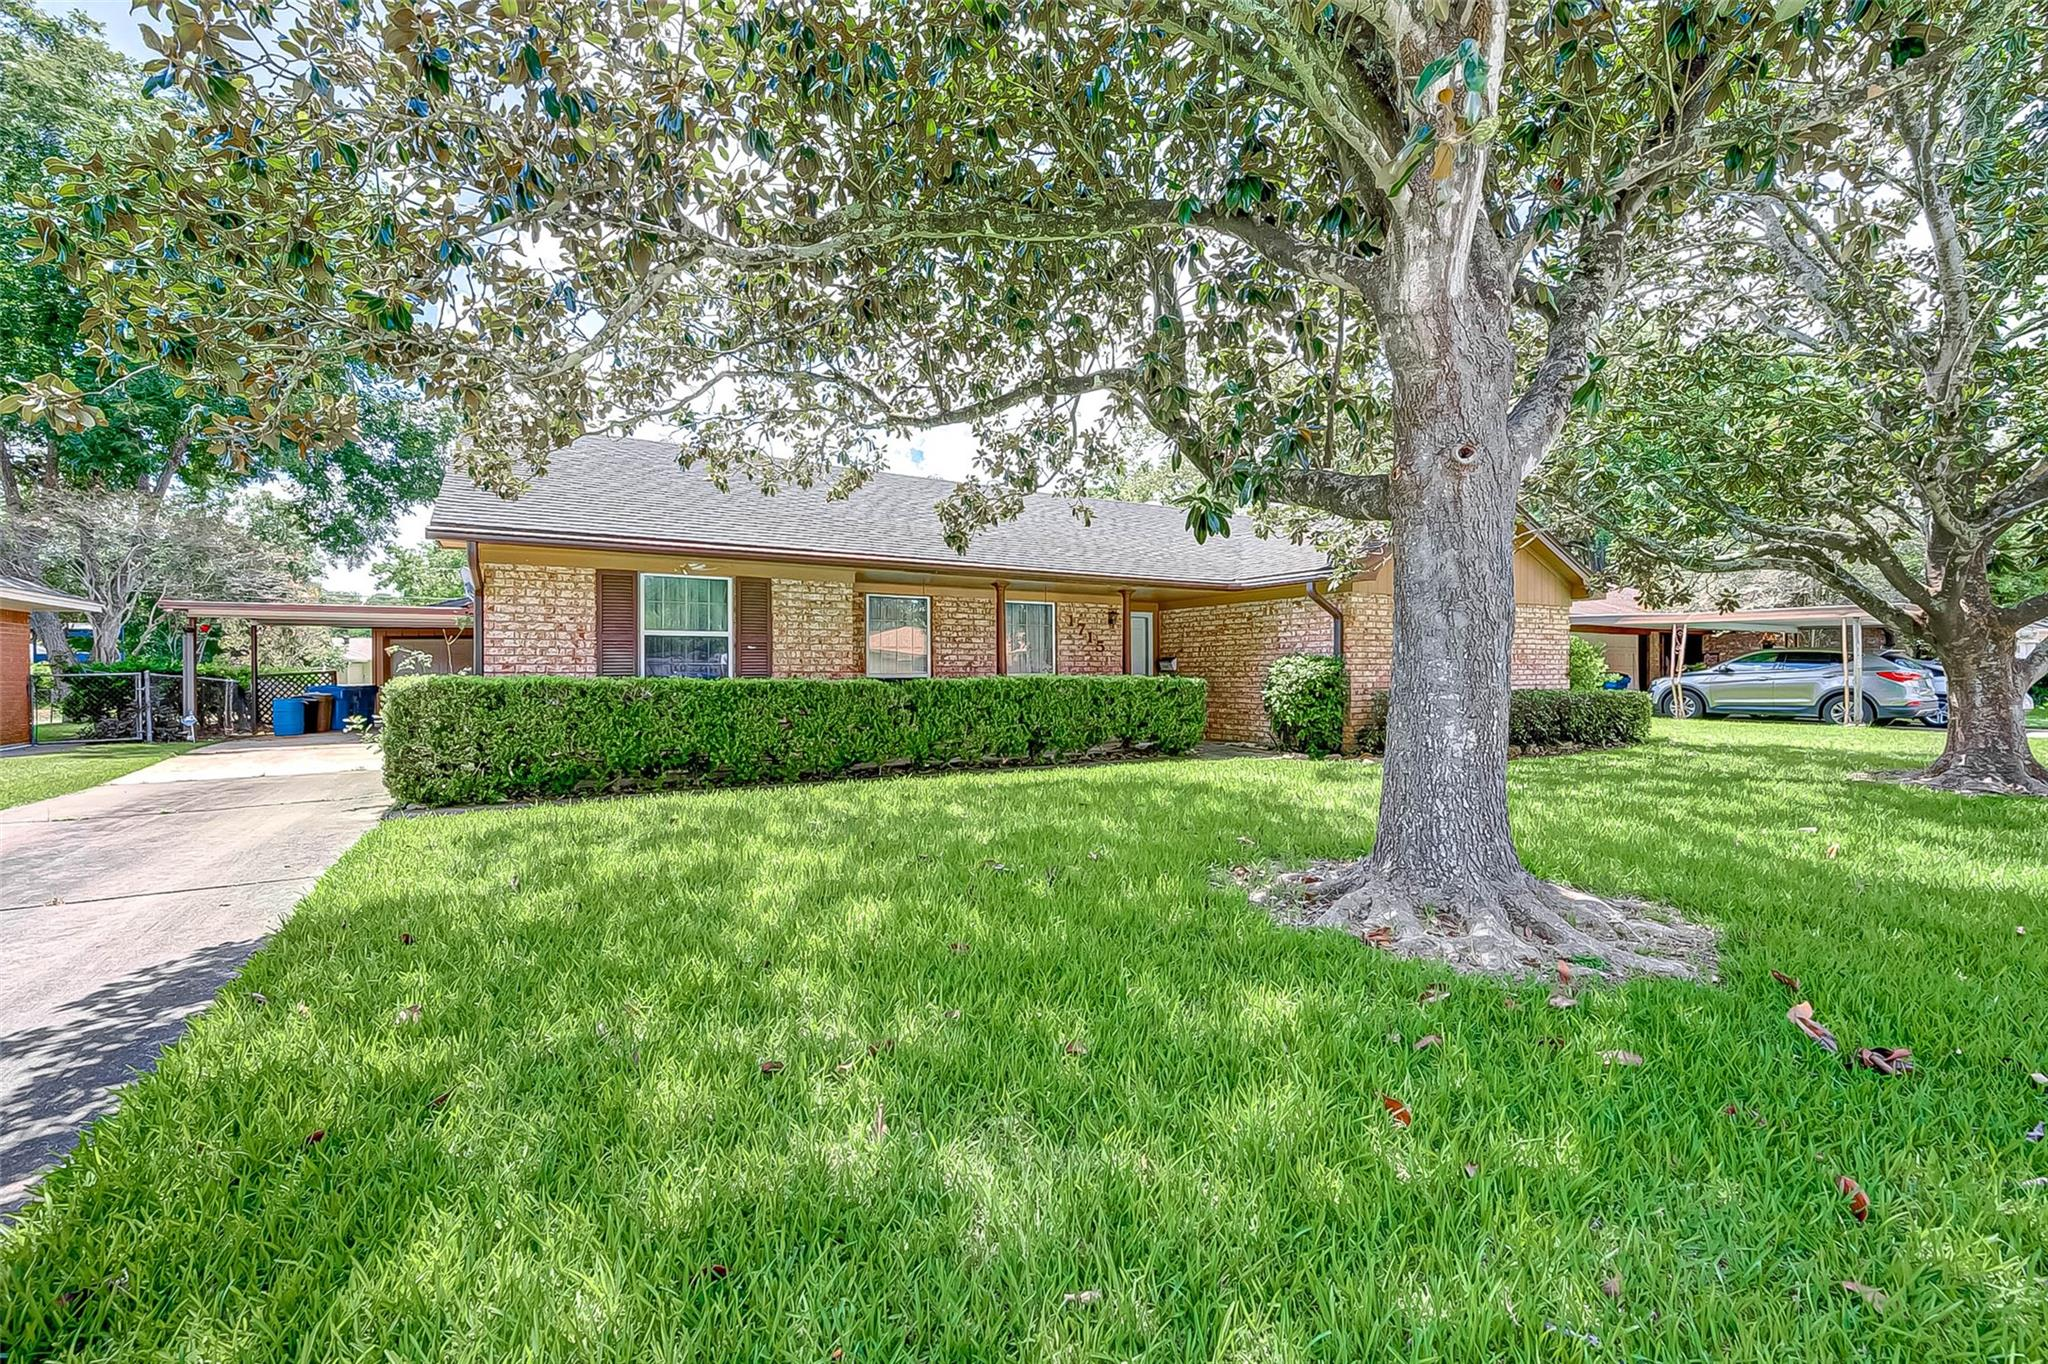 1715 Avenue R Property Photo - Rosenberg, TX real estate listing